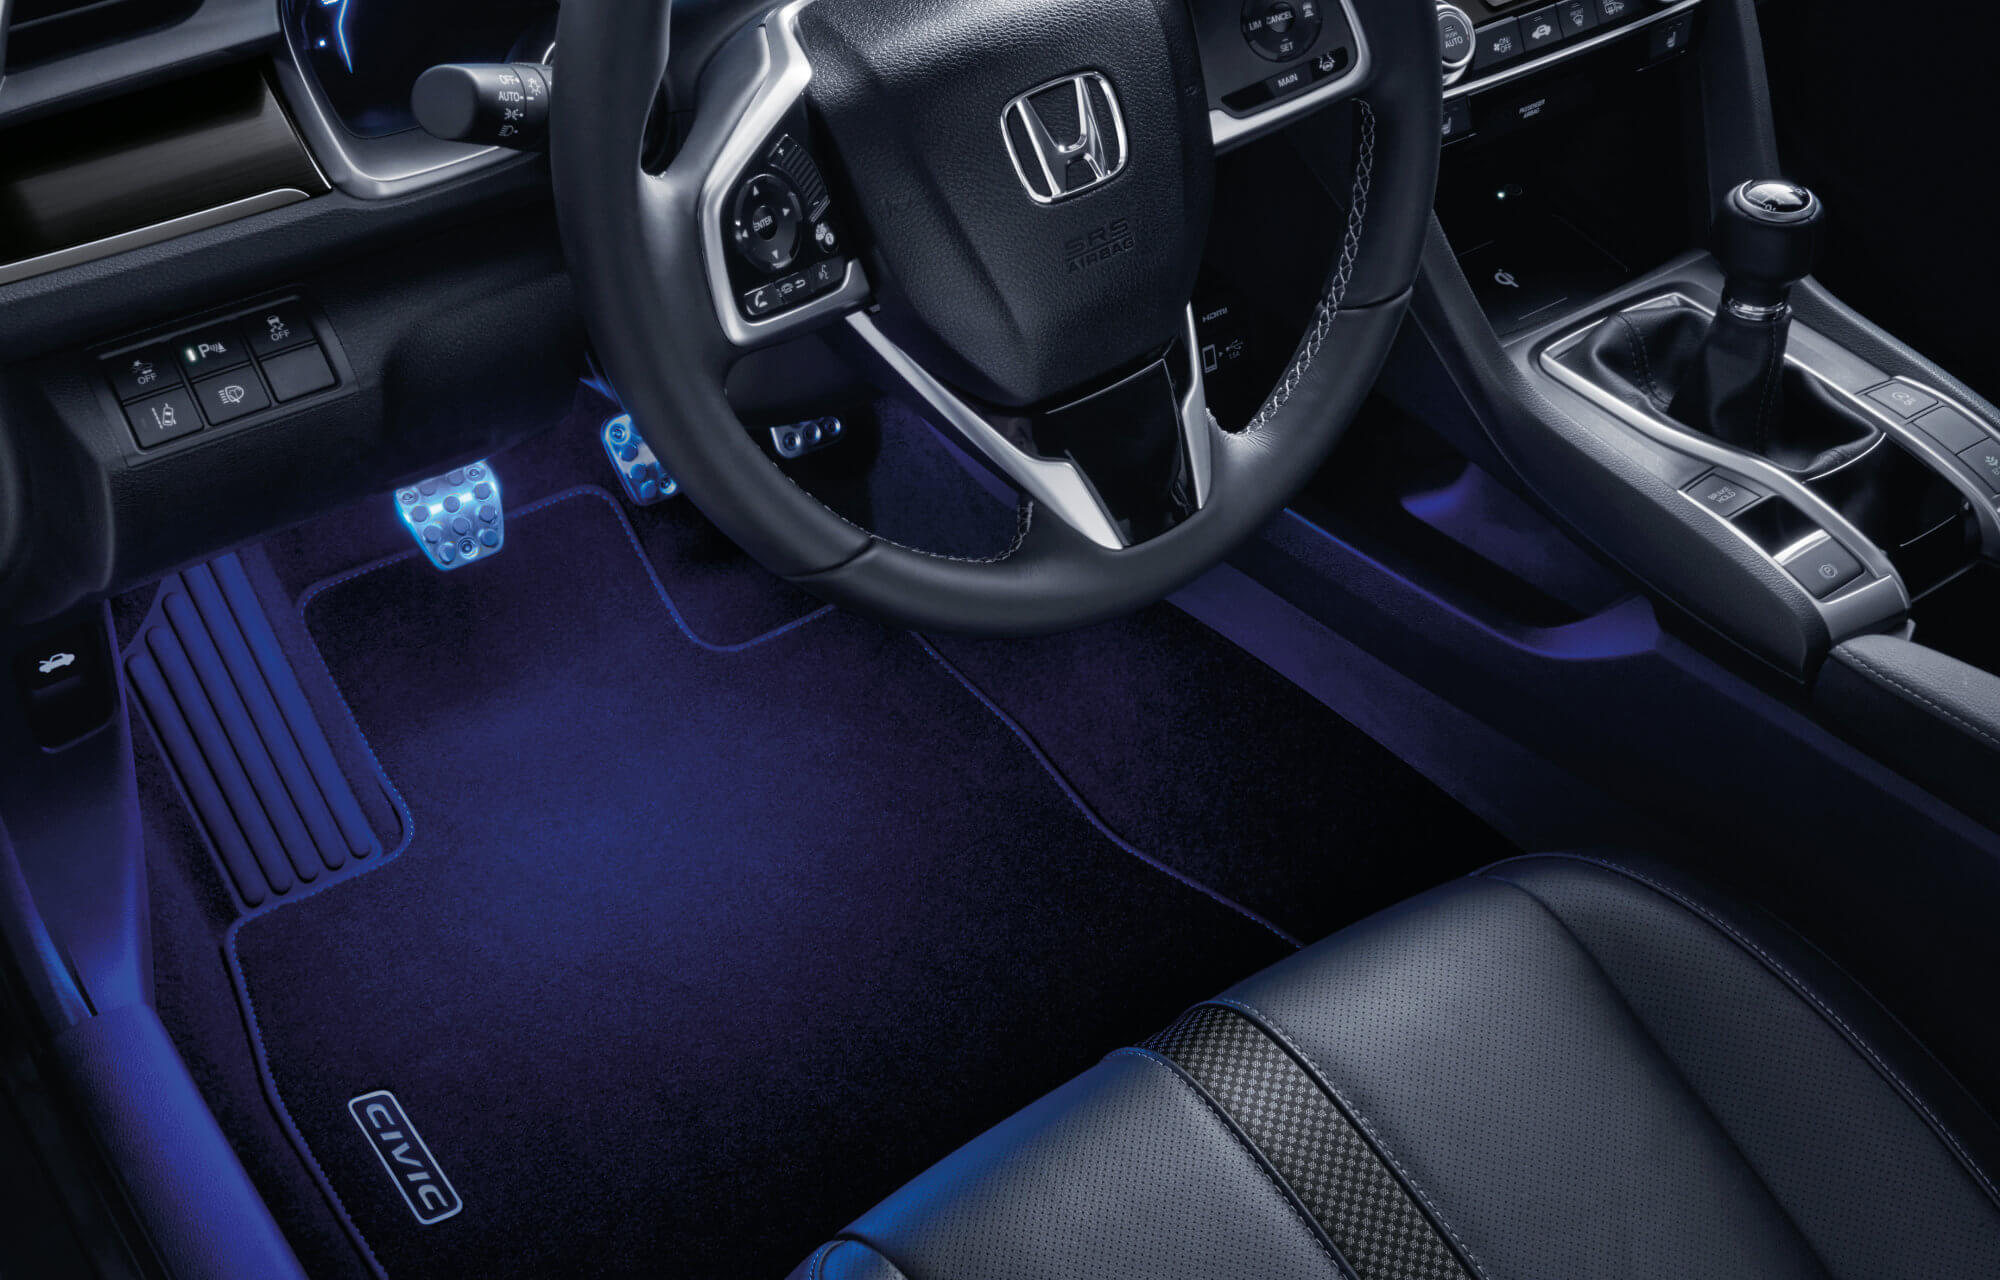 Honda Civic 5 Door Sedan Illumination Pack